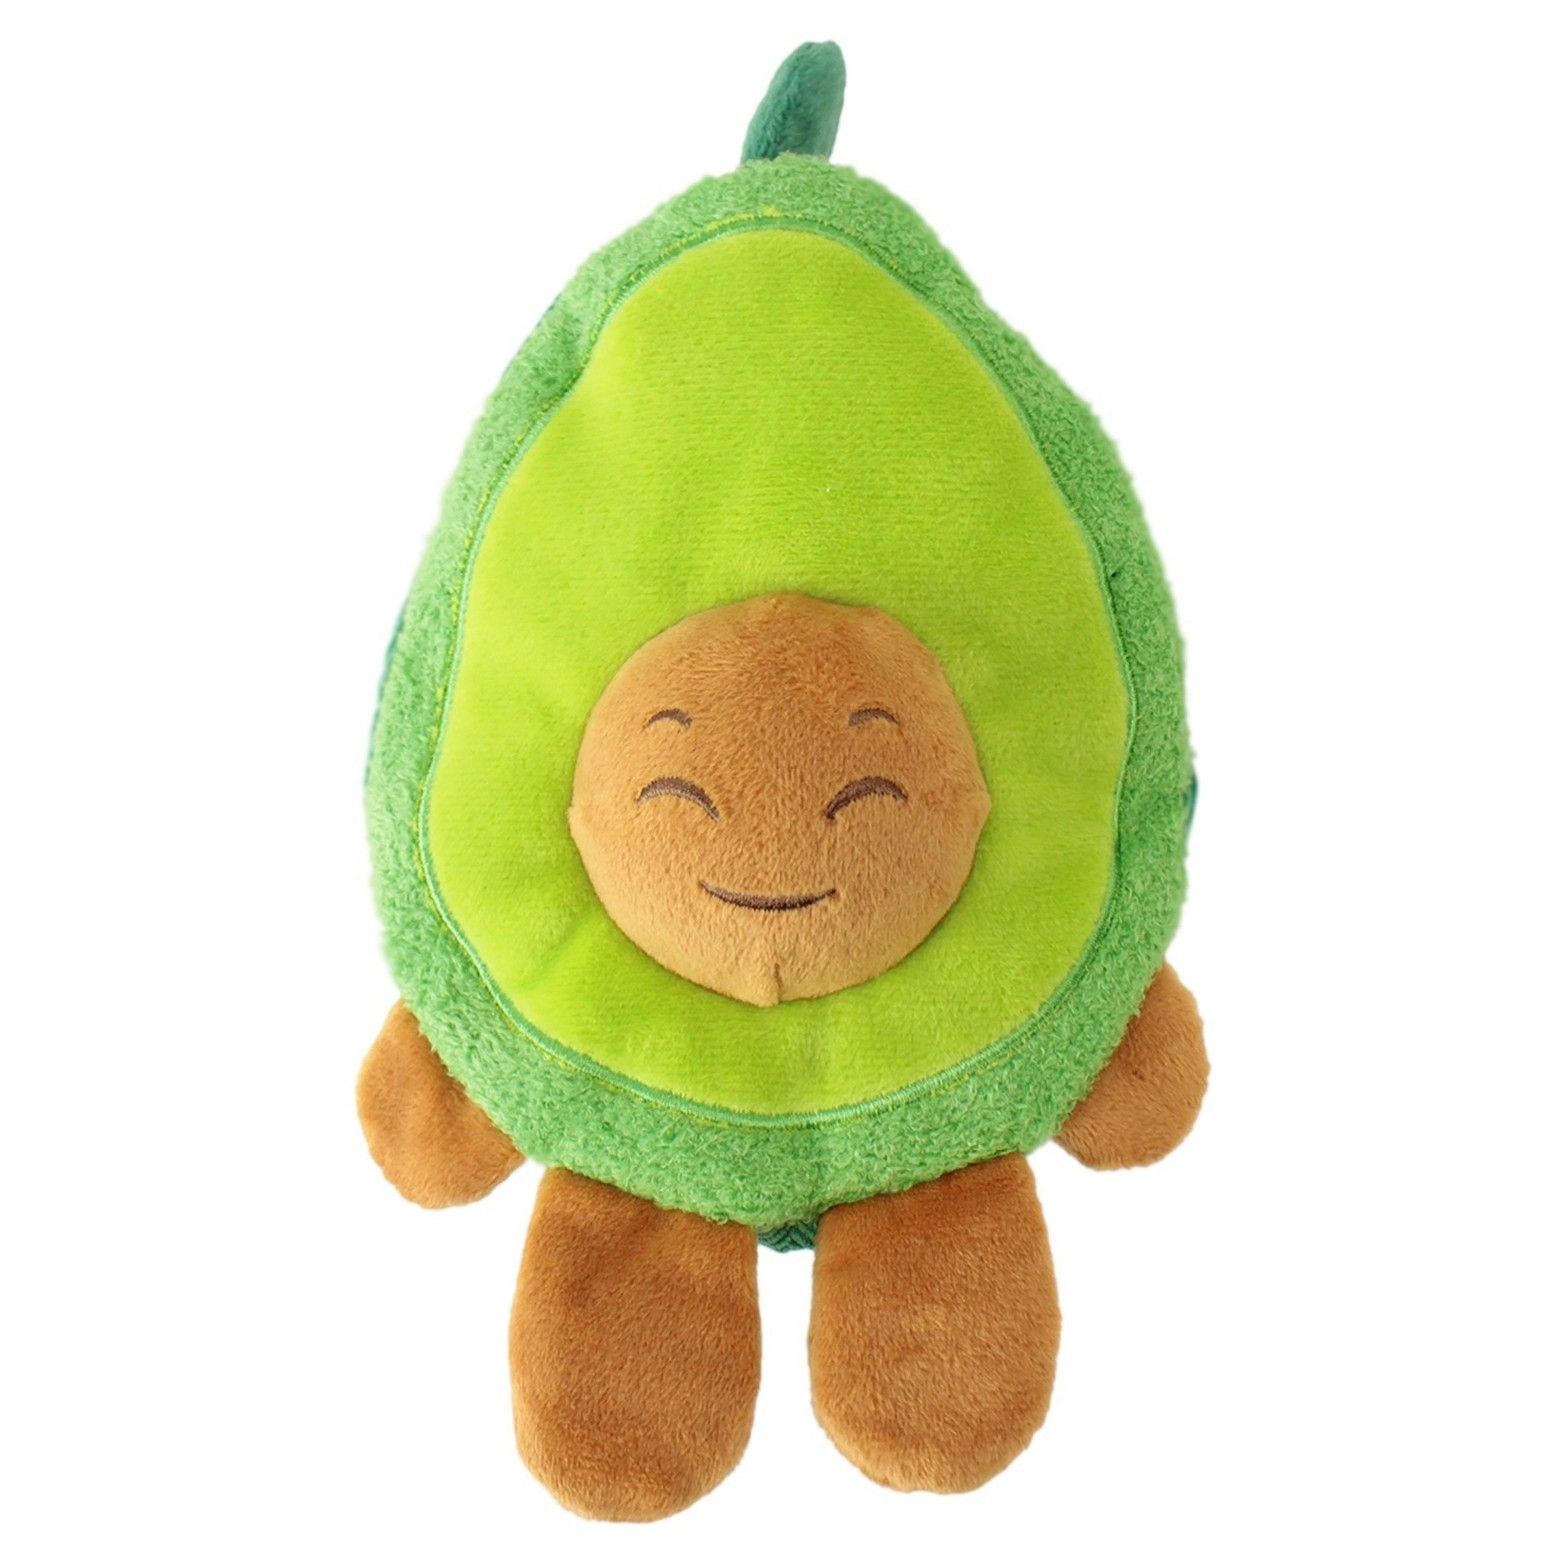 Boots Barkley Plush Avocado Dog Toy Provides Hours Of Squeaky